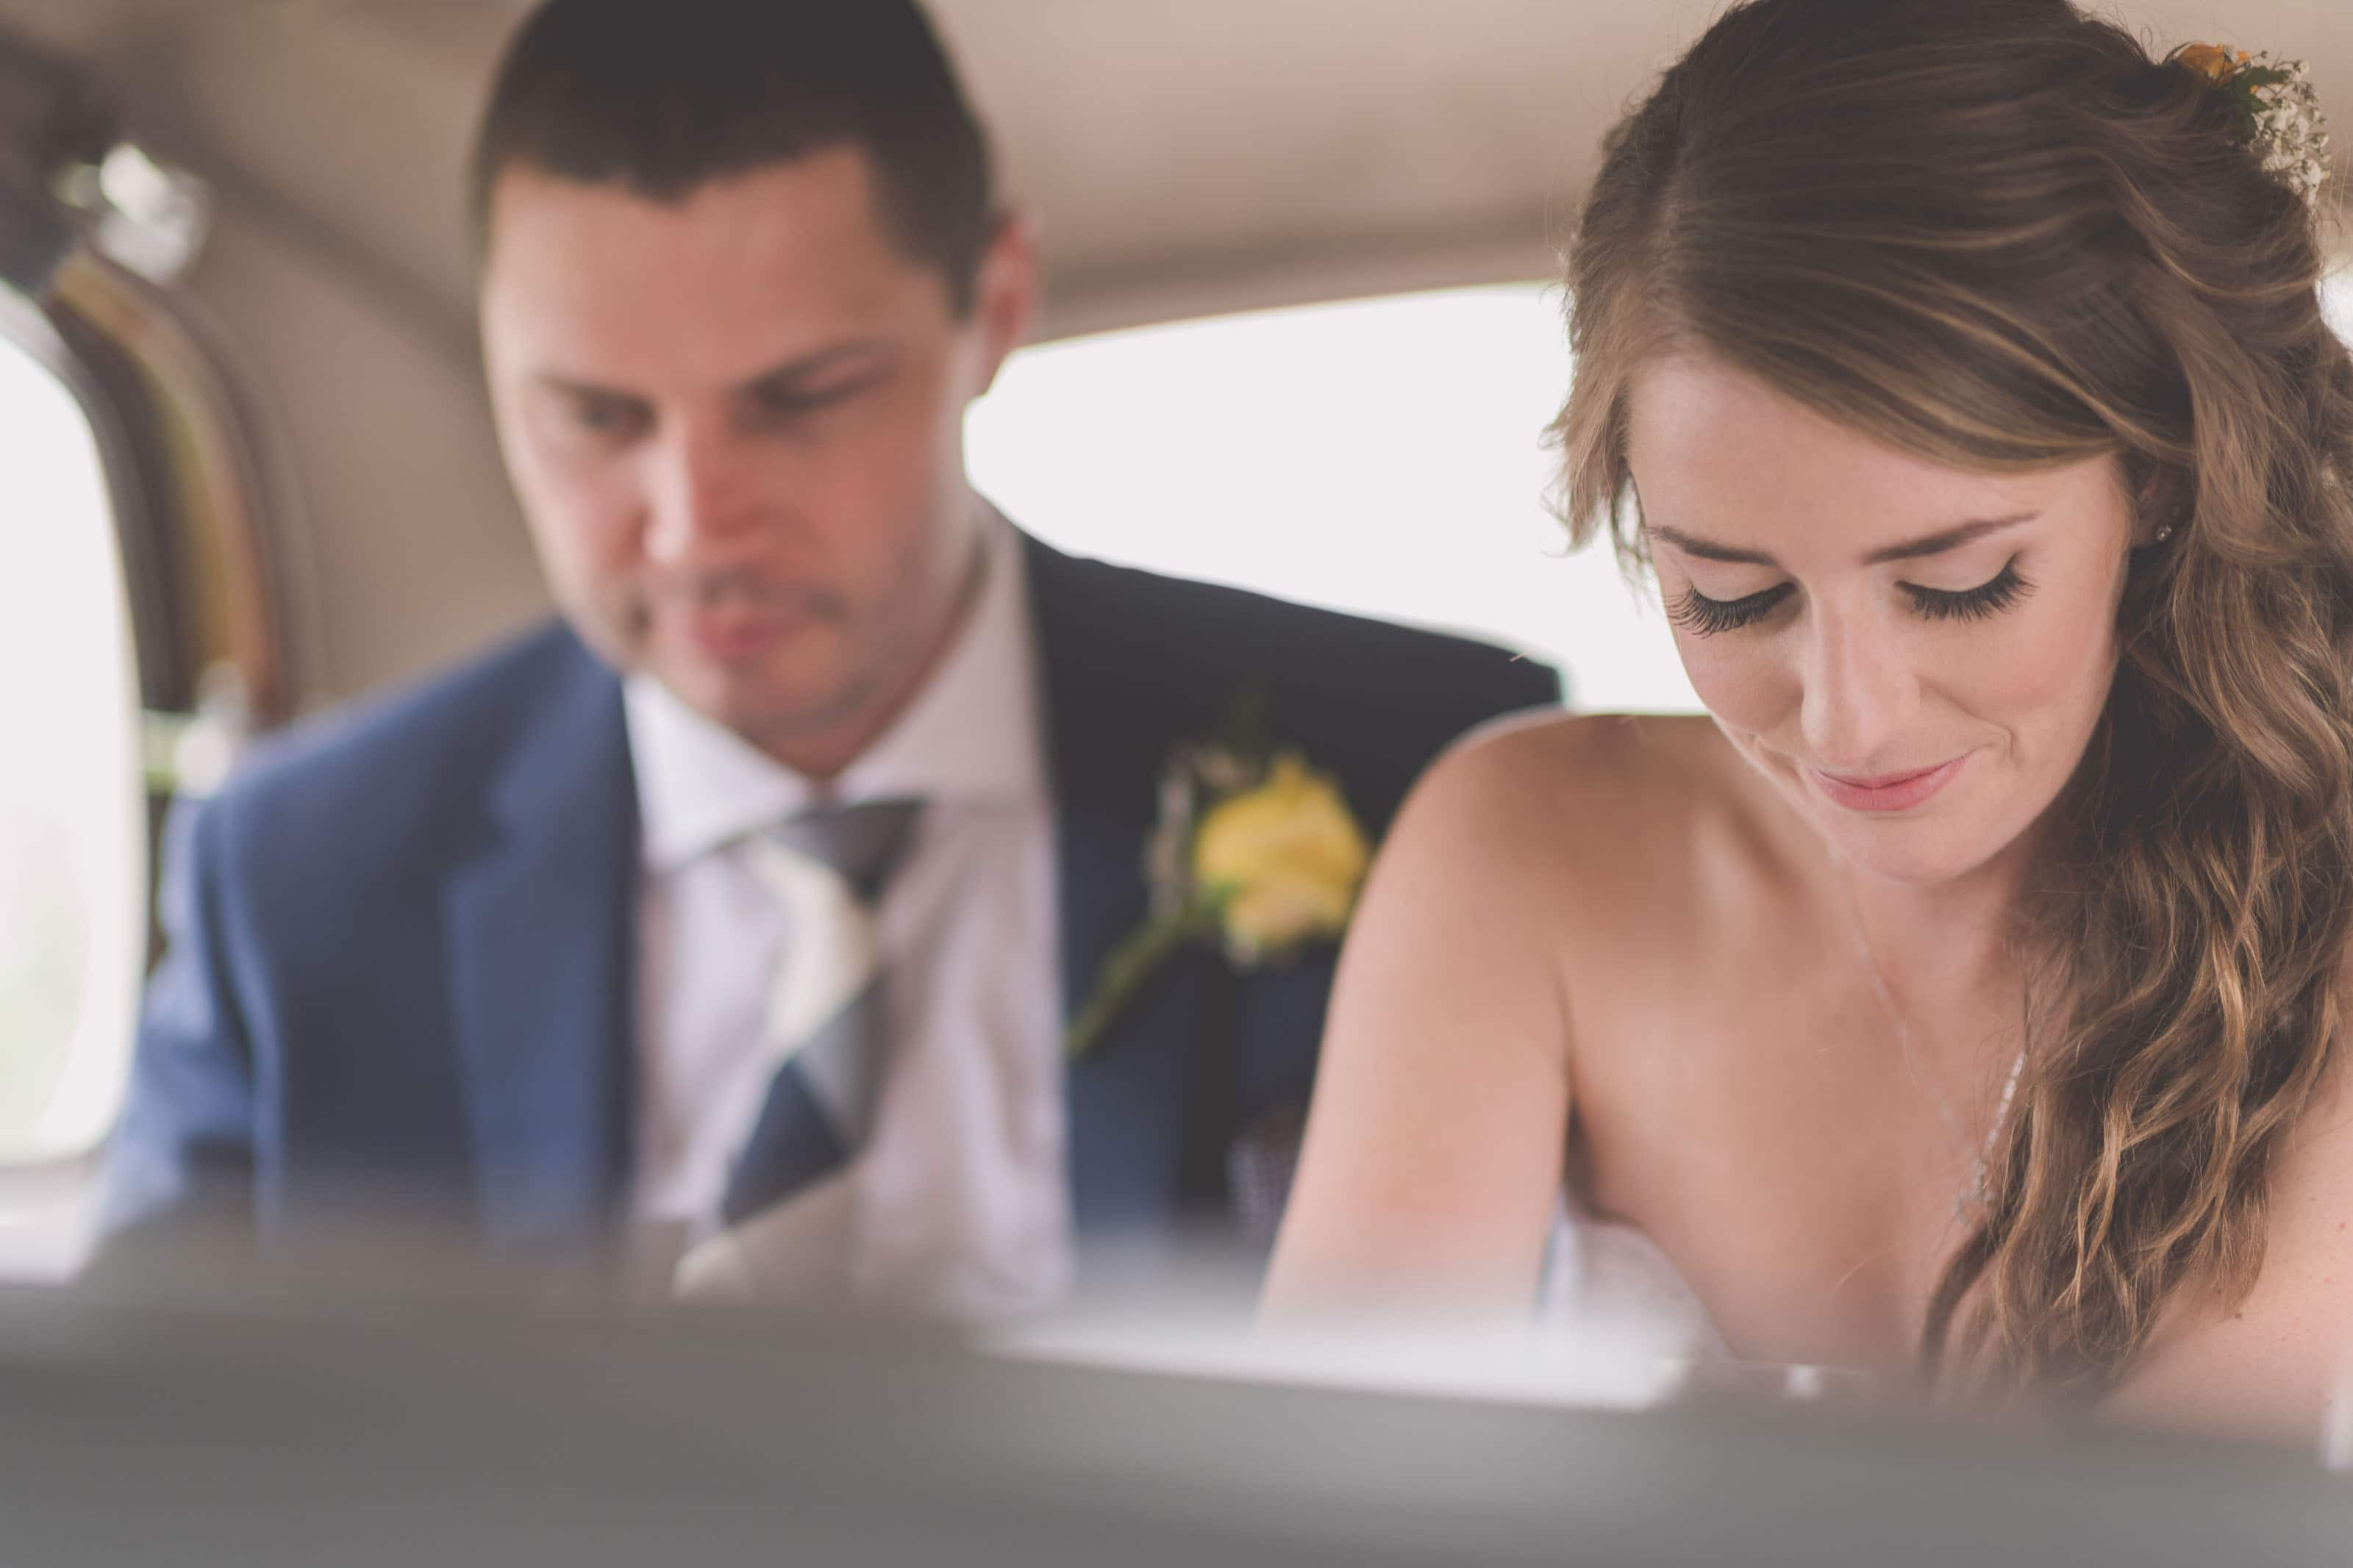 Wedding Photography Melbourne by Pause The Moment - Stunning Melbourne wedding photography in a Rolls Royce - Paringa Estate Wedding Photographer